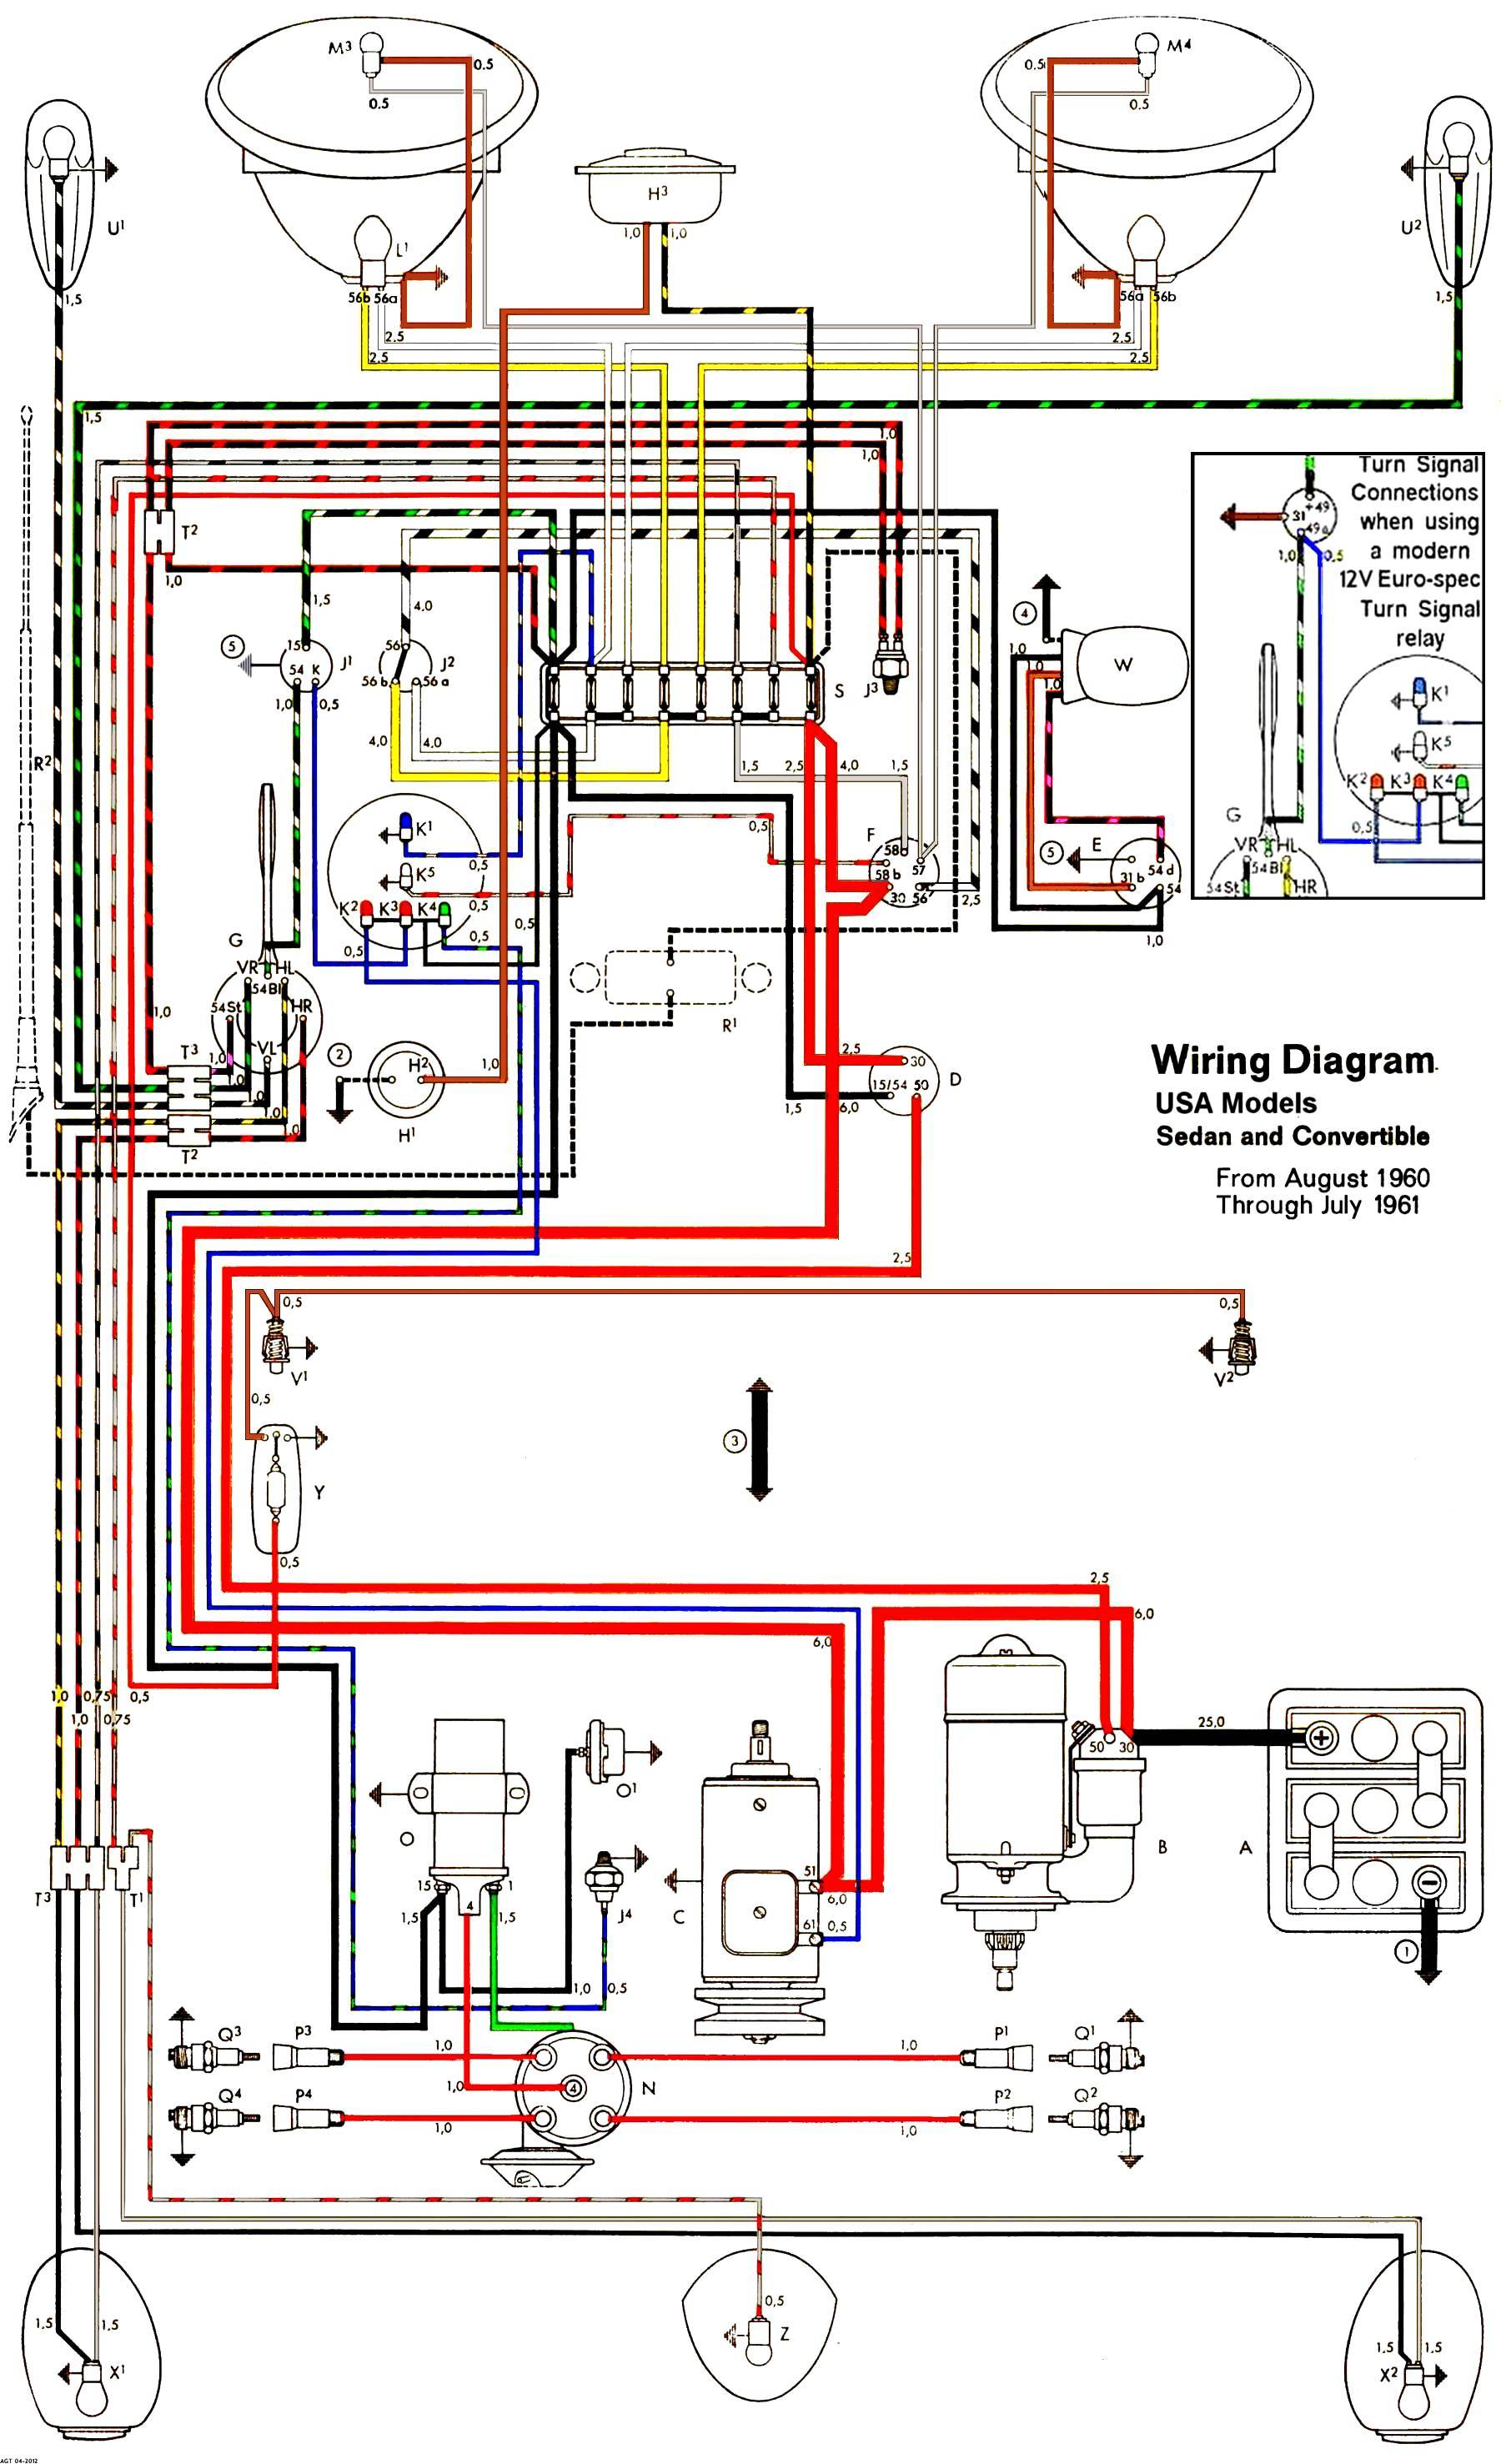 1951 Willys Pickup Wiring Diagram Reinvent Your 1965 Cj5 Generator Schematics Diagrams U2022 Rh Parntesis Co Jeep Ignition M37